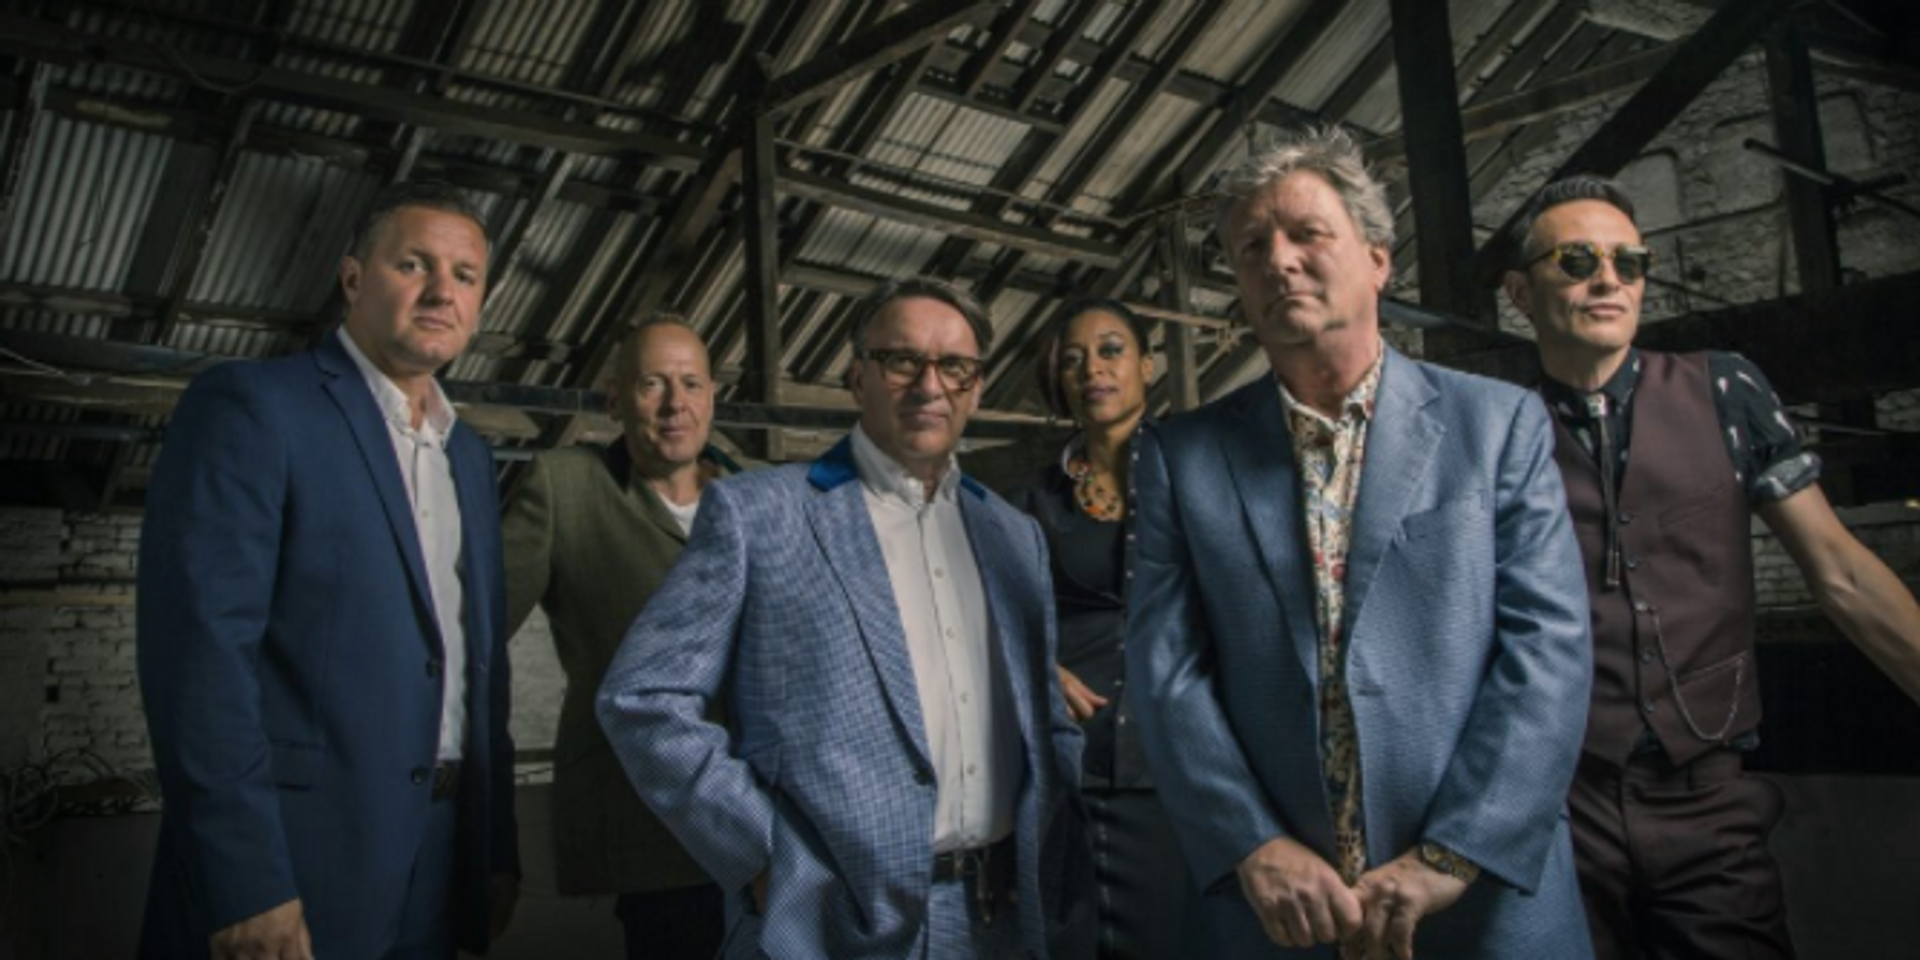 New wave legends Squeeze to perform in Singapore